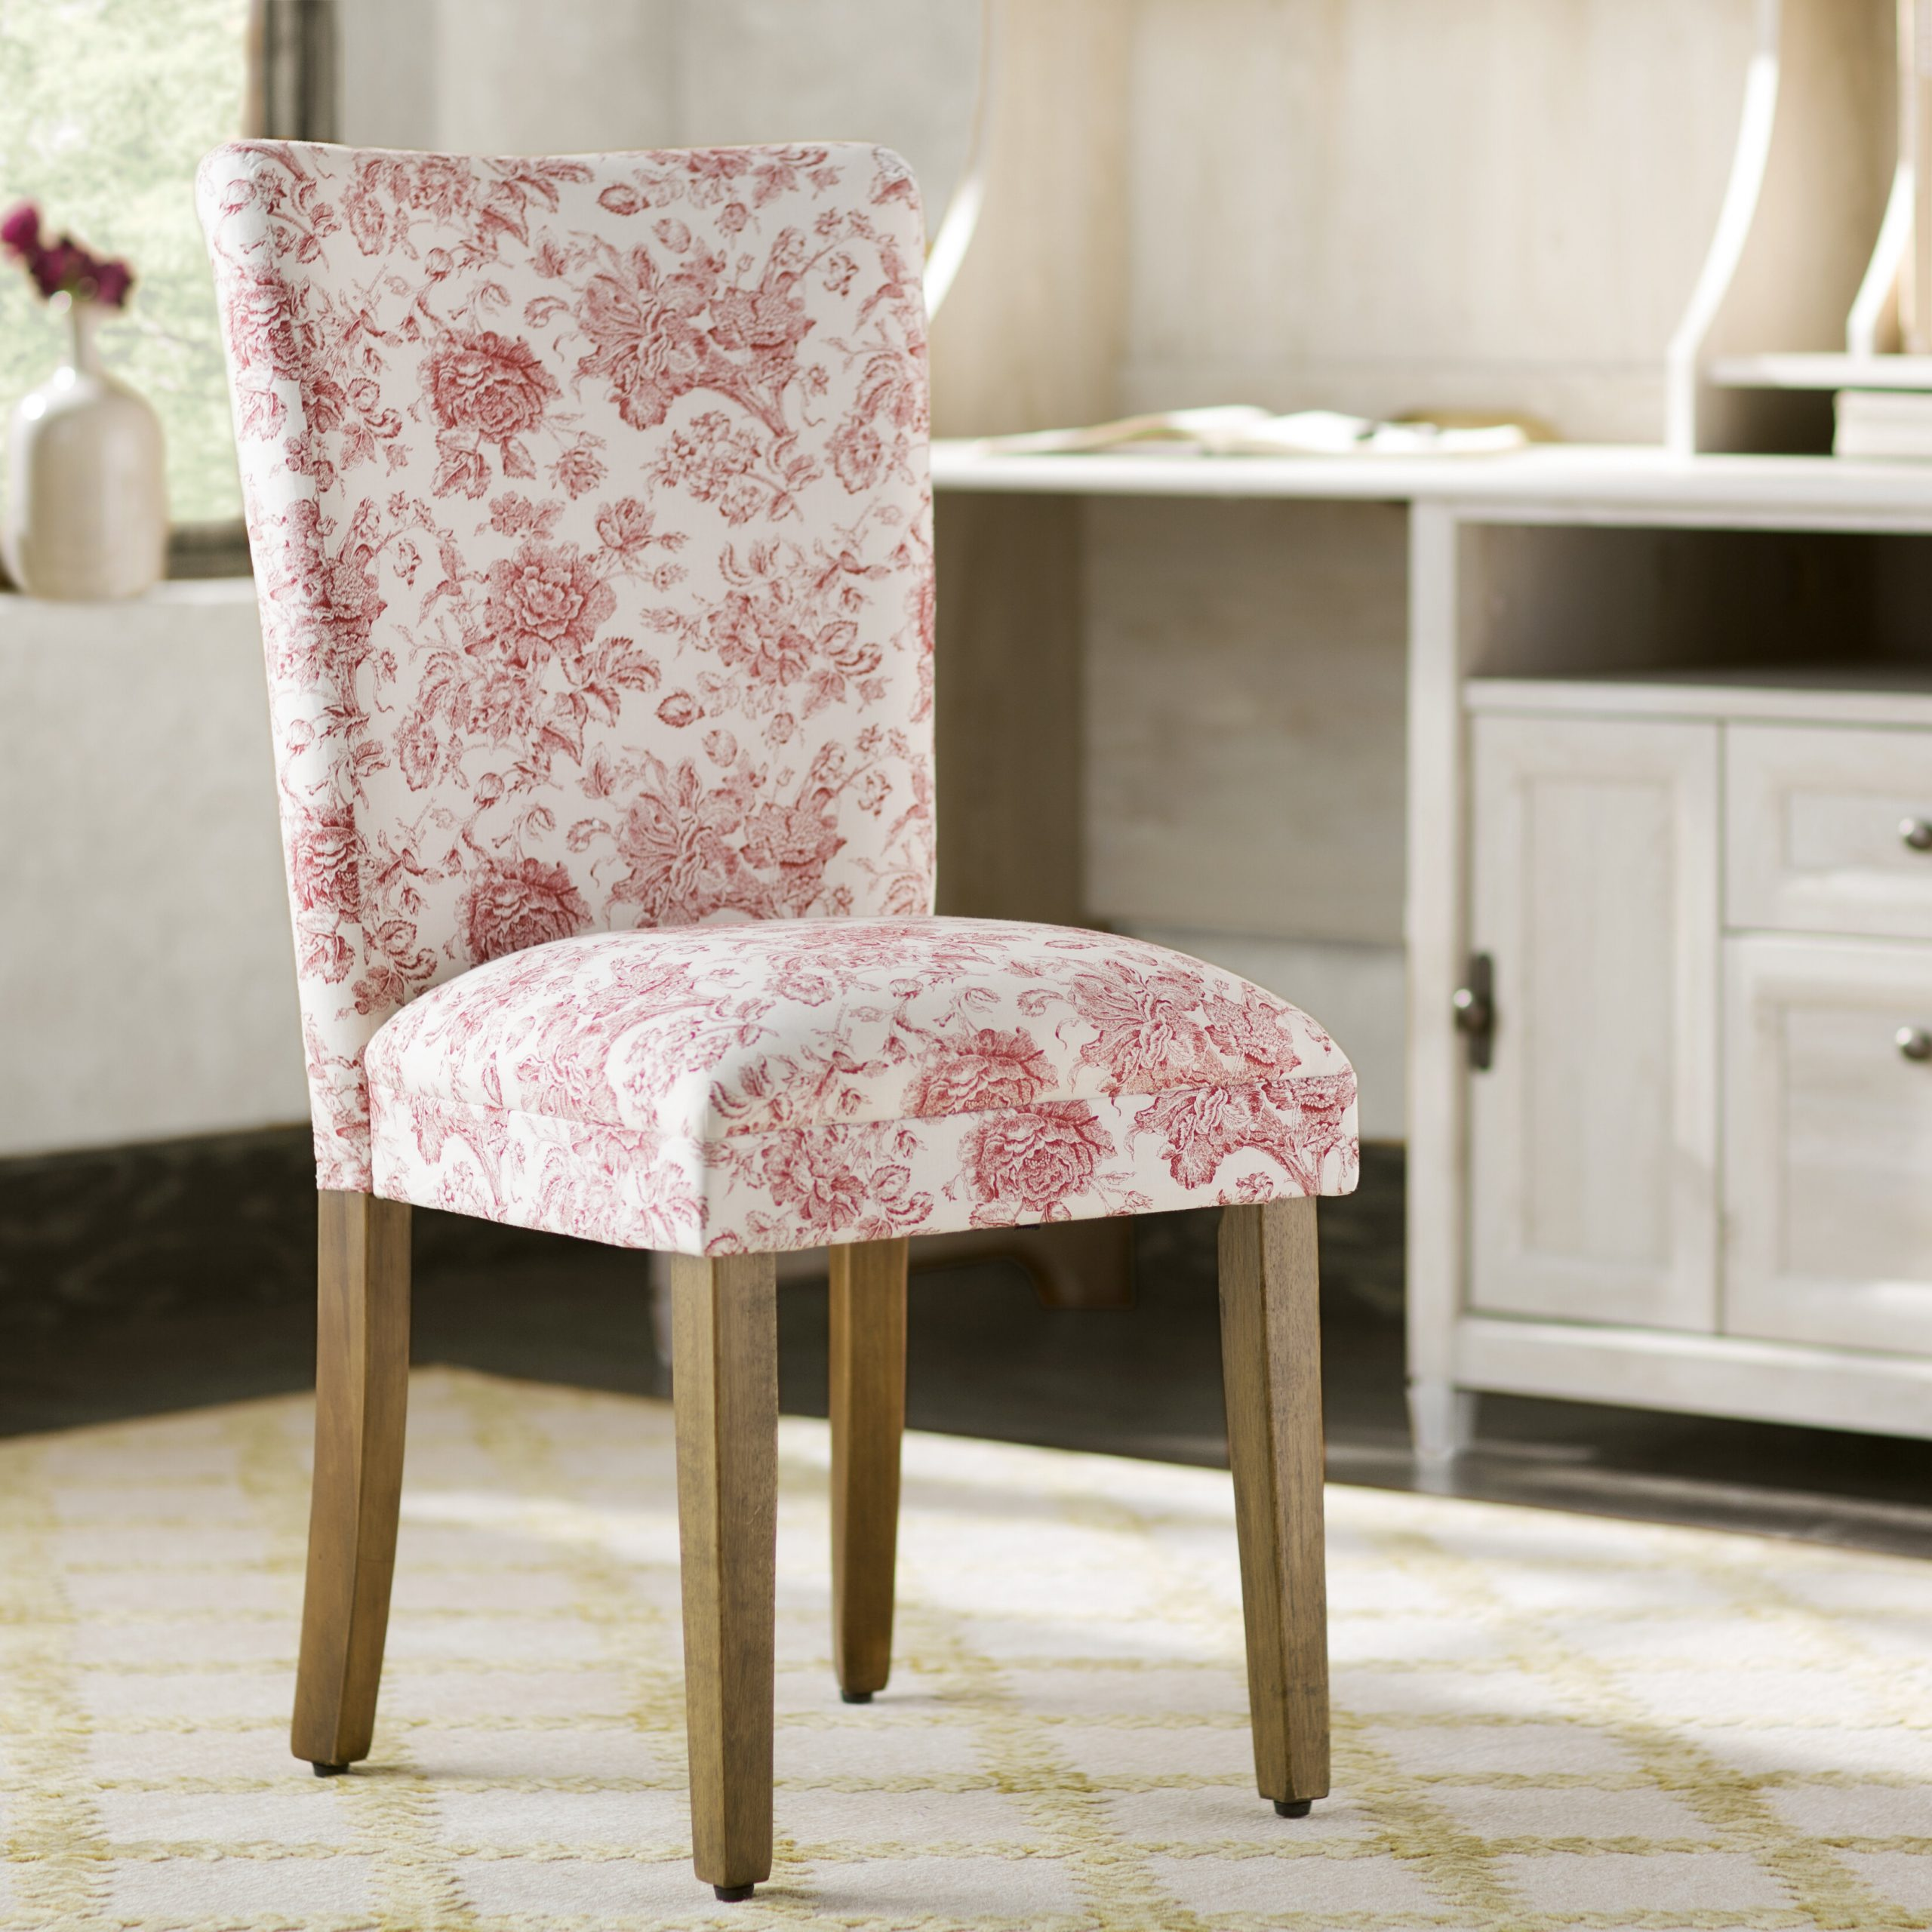 Parsons Accent Chairs You'Ll Love In 2021 | Wayfair Regarding Aime Upholstered Parsons Chairs In Beige (View 4 of 15)